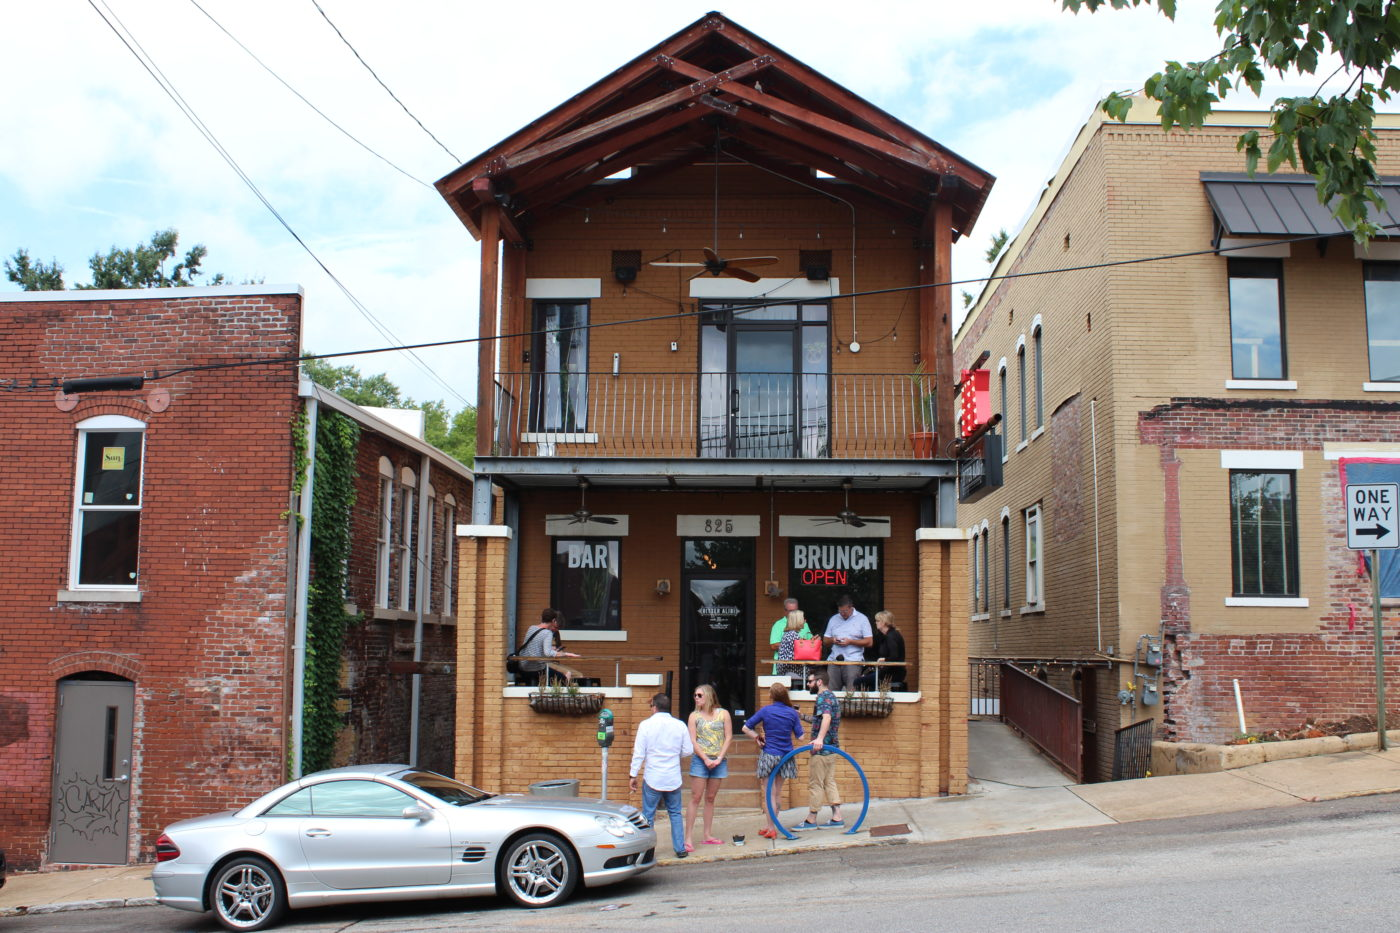 The Bitter Alibi is located on Houston Street in Chattanooga, TN. Great for dinner, drinks or just hanging out with friends.